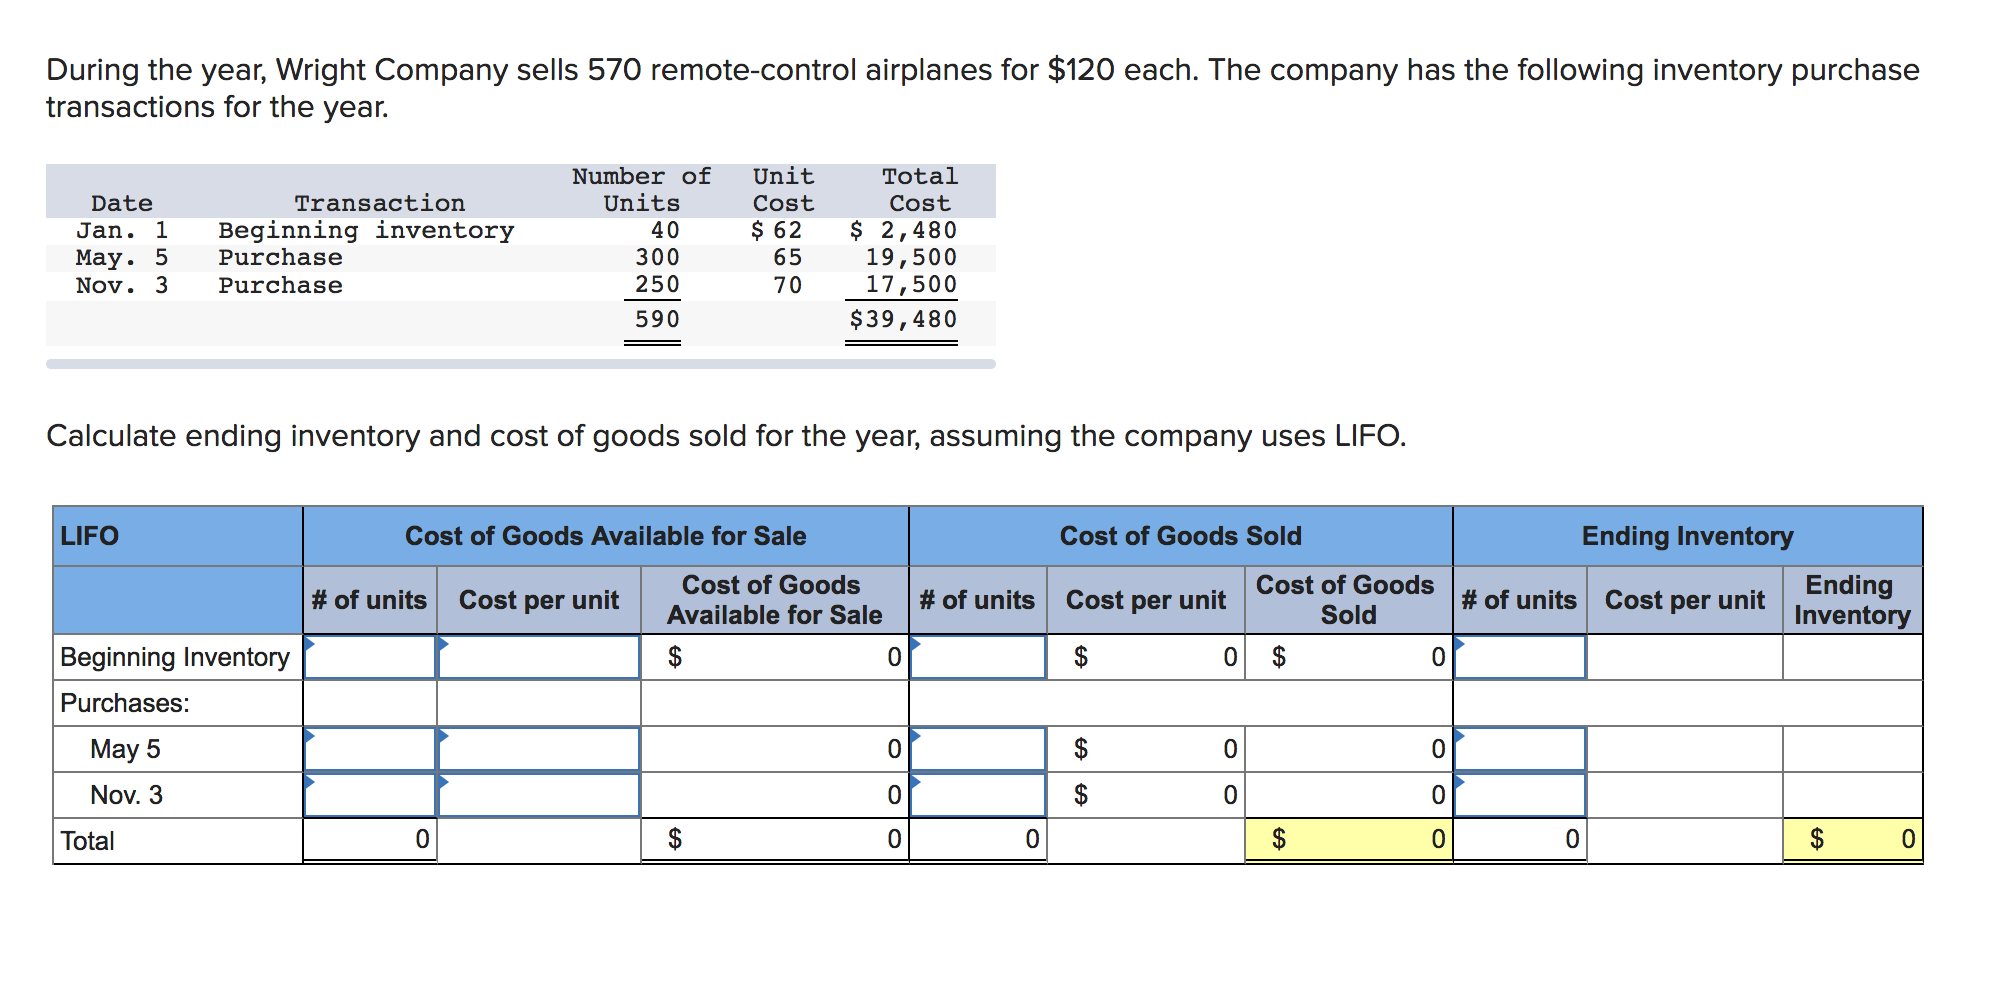 During the year, Wright Company sells 570 remote-control airplanes for $120 each. The company has the following inventory purchase transactions for the year. Number of Units Unit Total Transaction Date Cost Cost $ 62 65 $ 2,480 19,500 17,500 $39,480 Beginning inventory Purchase Jan. 1 40 Маy. 5 Nov. 3 300 250 Purchase 70 590 Calculate ending inventory and cost of goods sold for the year, assuming the company uses LIFO Ending Inventory LIFO Cost of Goods Available for Sale Cost of Goods Sold Ending Cost of Goods # of units Cost per unit Inventory Cost of Goods Cost per unit Cost per unit # of units #of units Available for Sale Sold Beginning Inventory $ $ 0 0 Purchases: May 5 0 0 0 Nov. 3 0 0 0 0 Total O